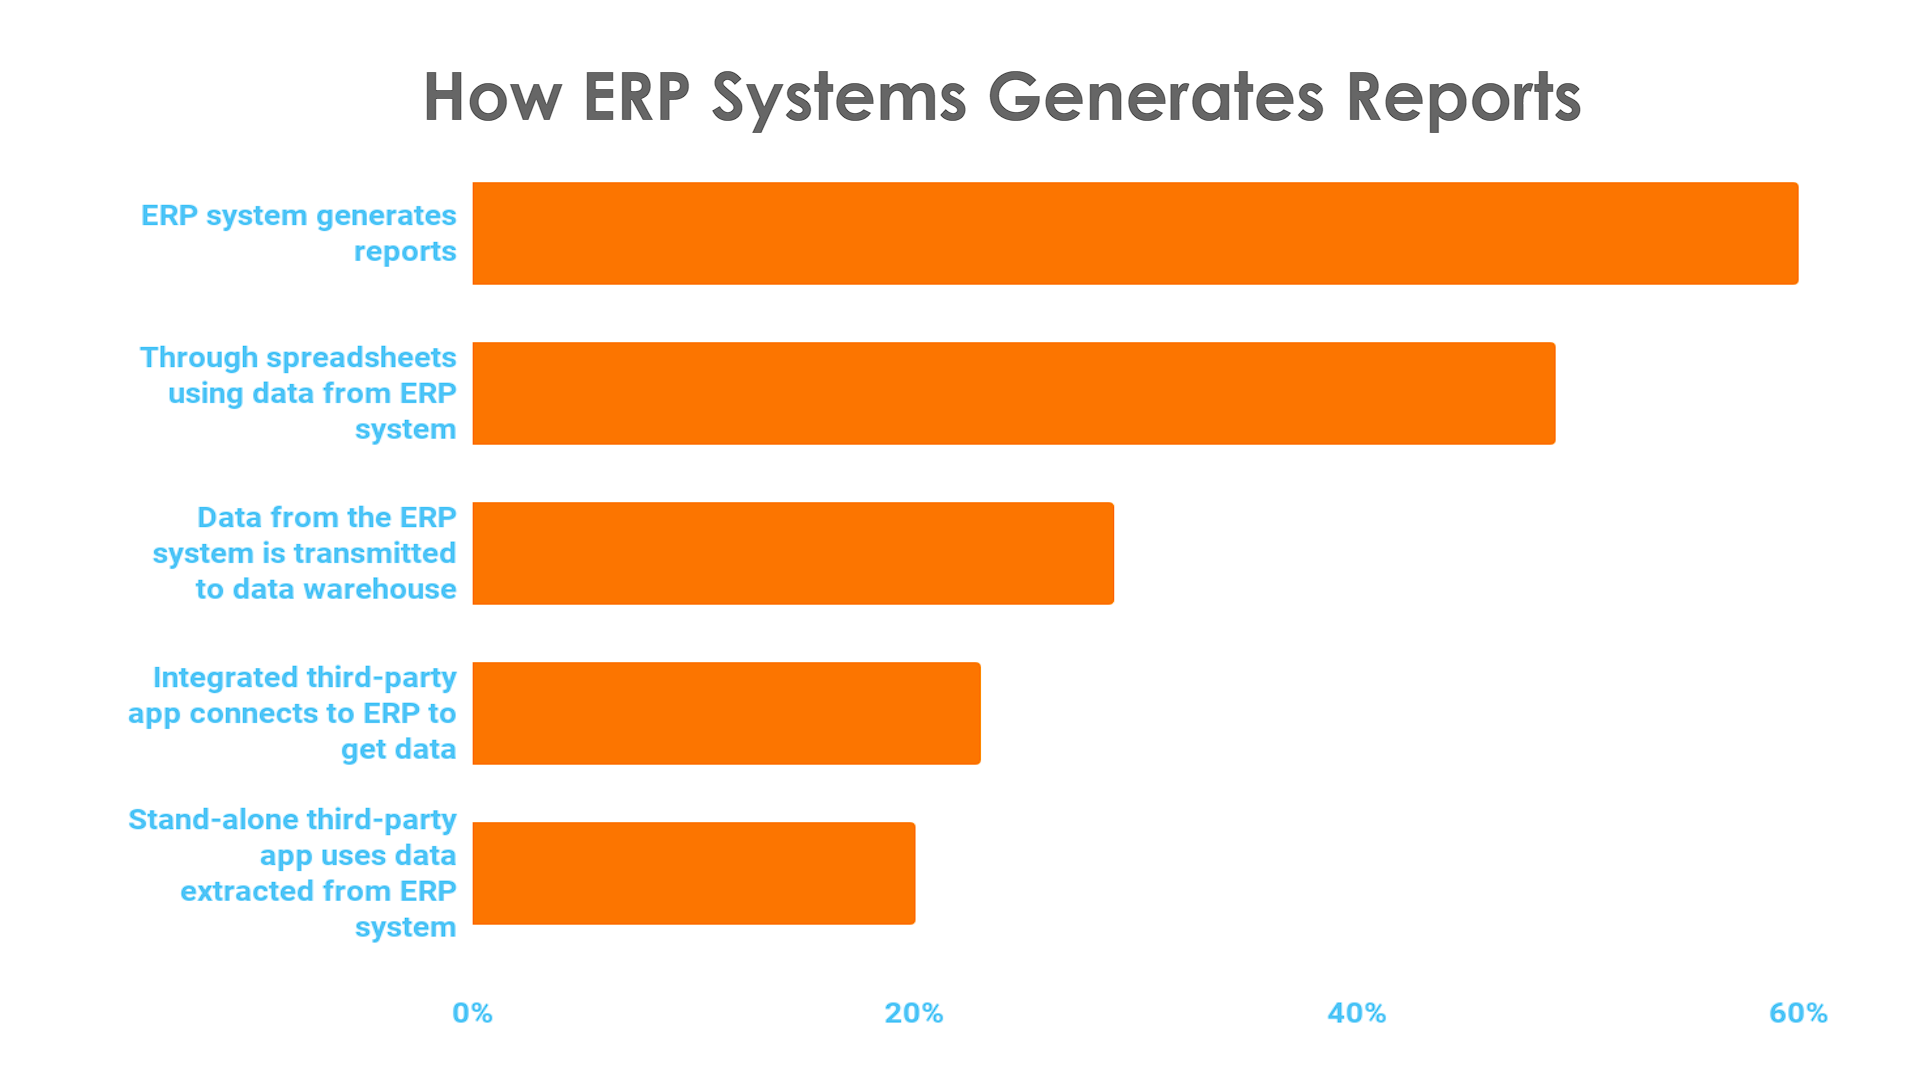 How ERP Systems Generate Report